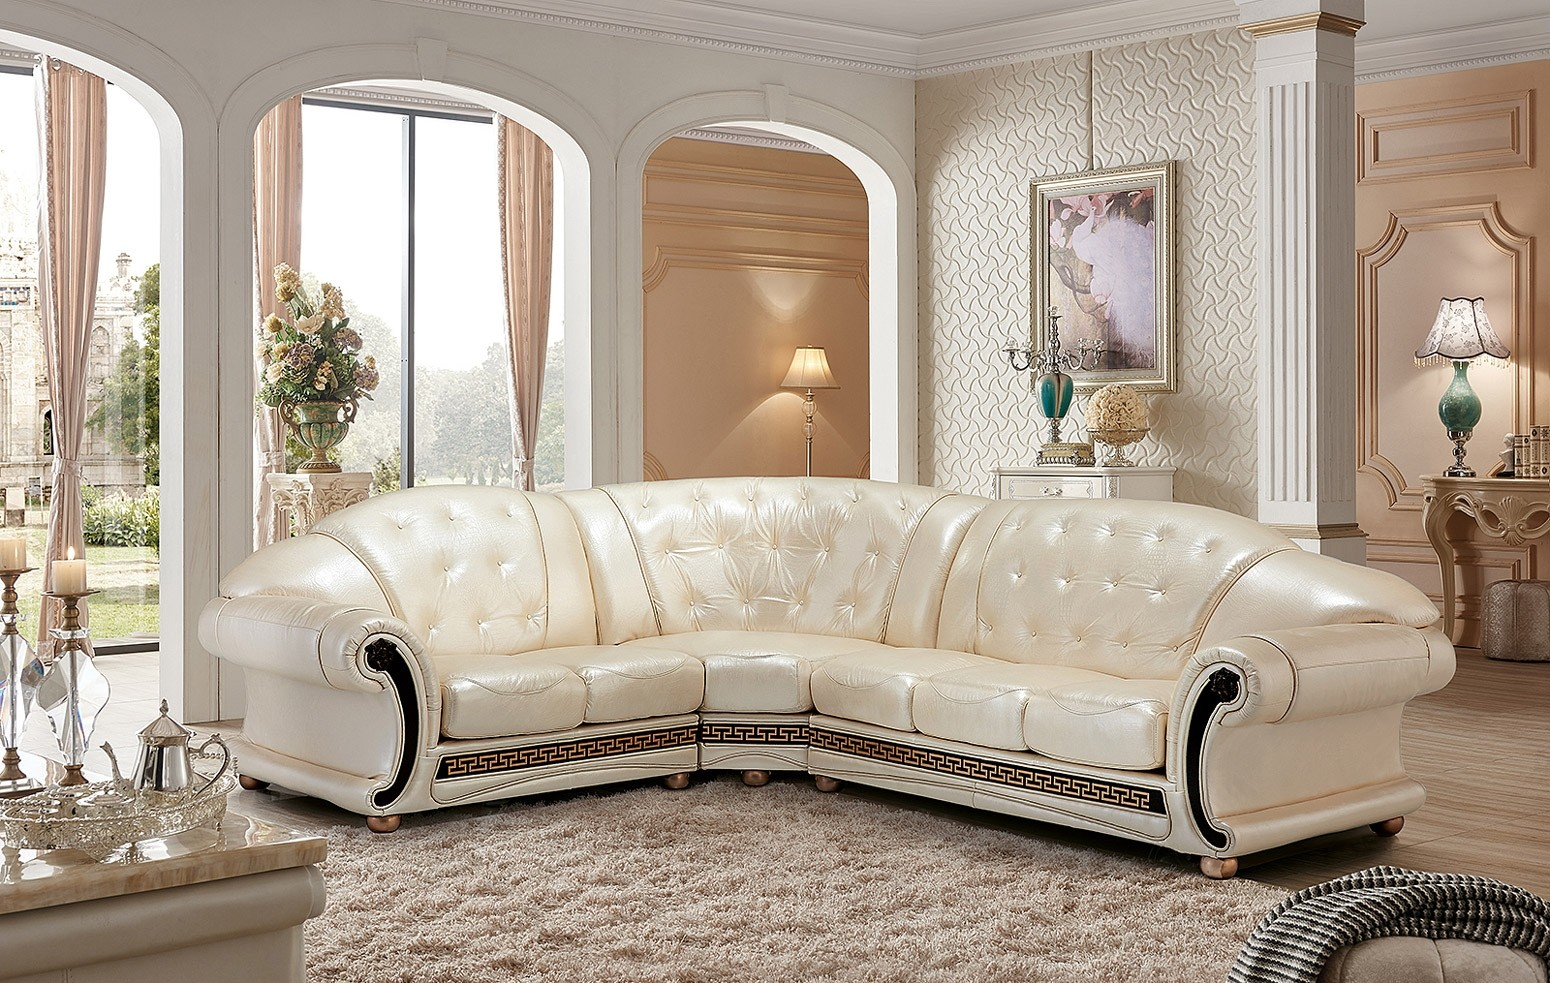 Apolo Sectional Sofa in Pearl Italian Leather